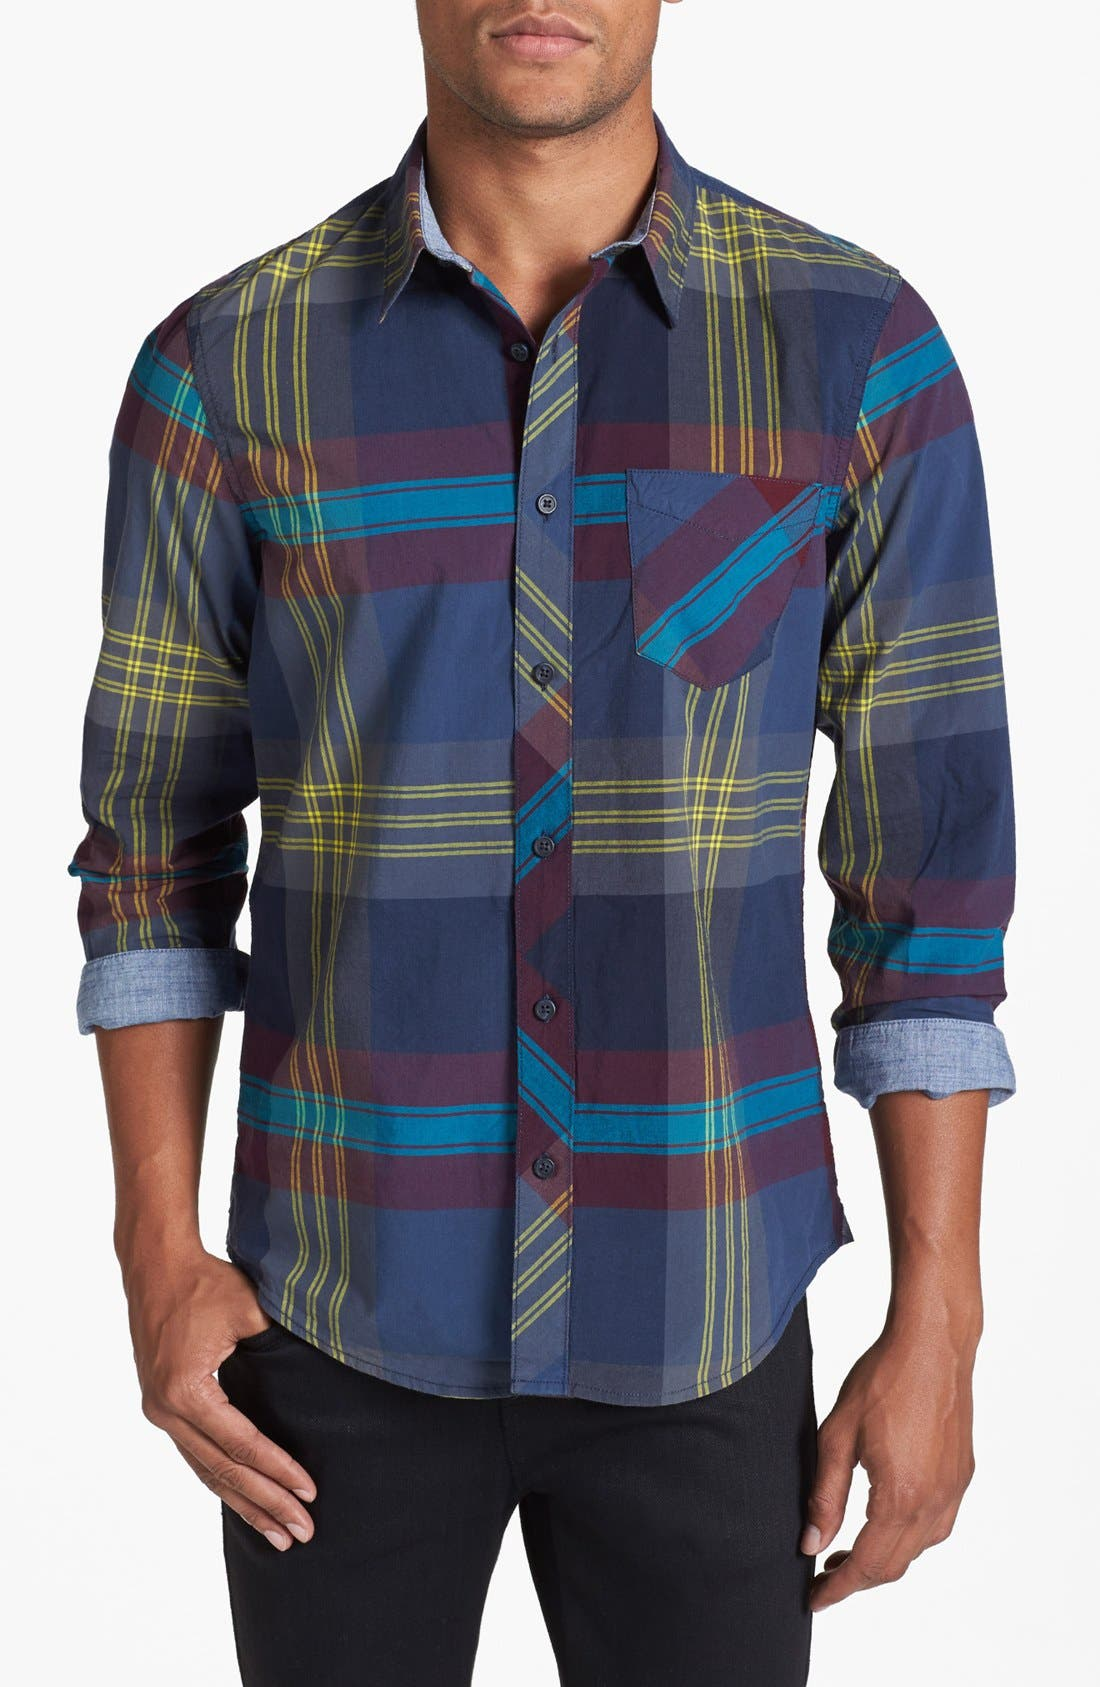 Main Image - 1901 Plaid Poplin Shirt